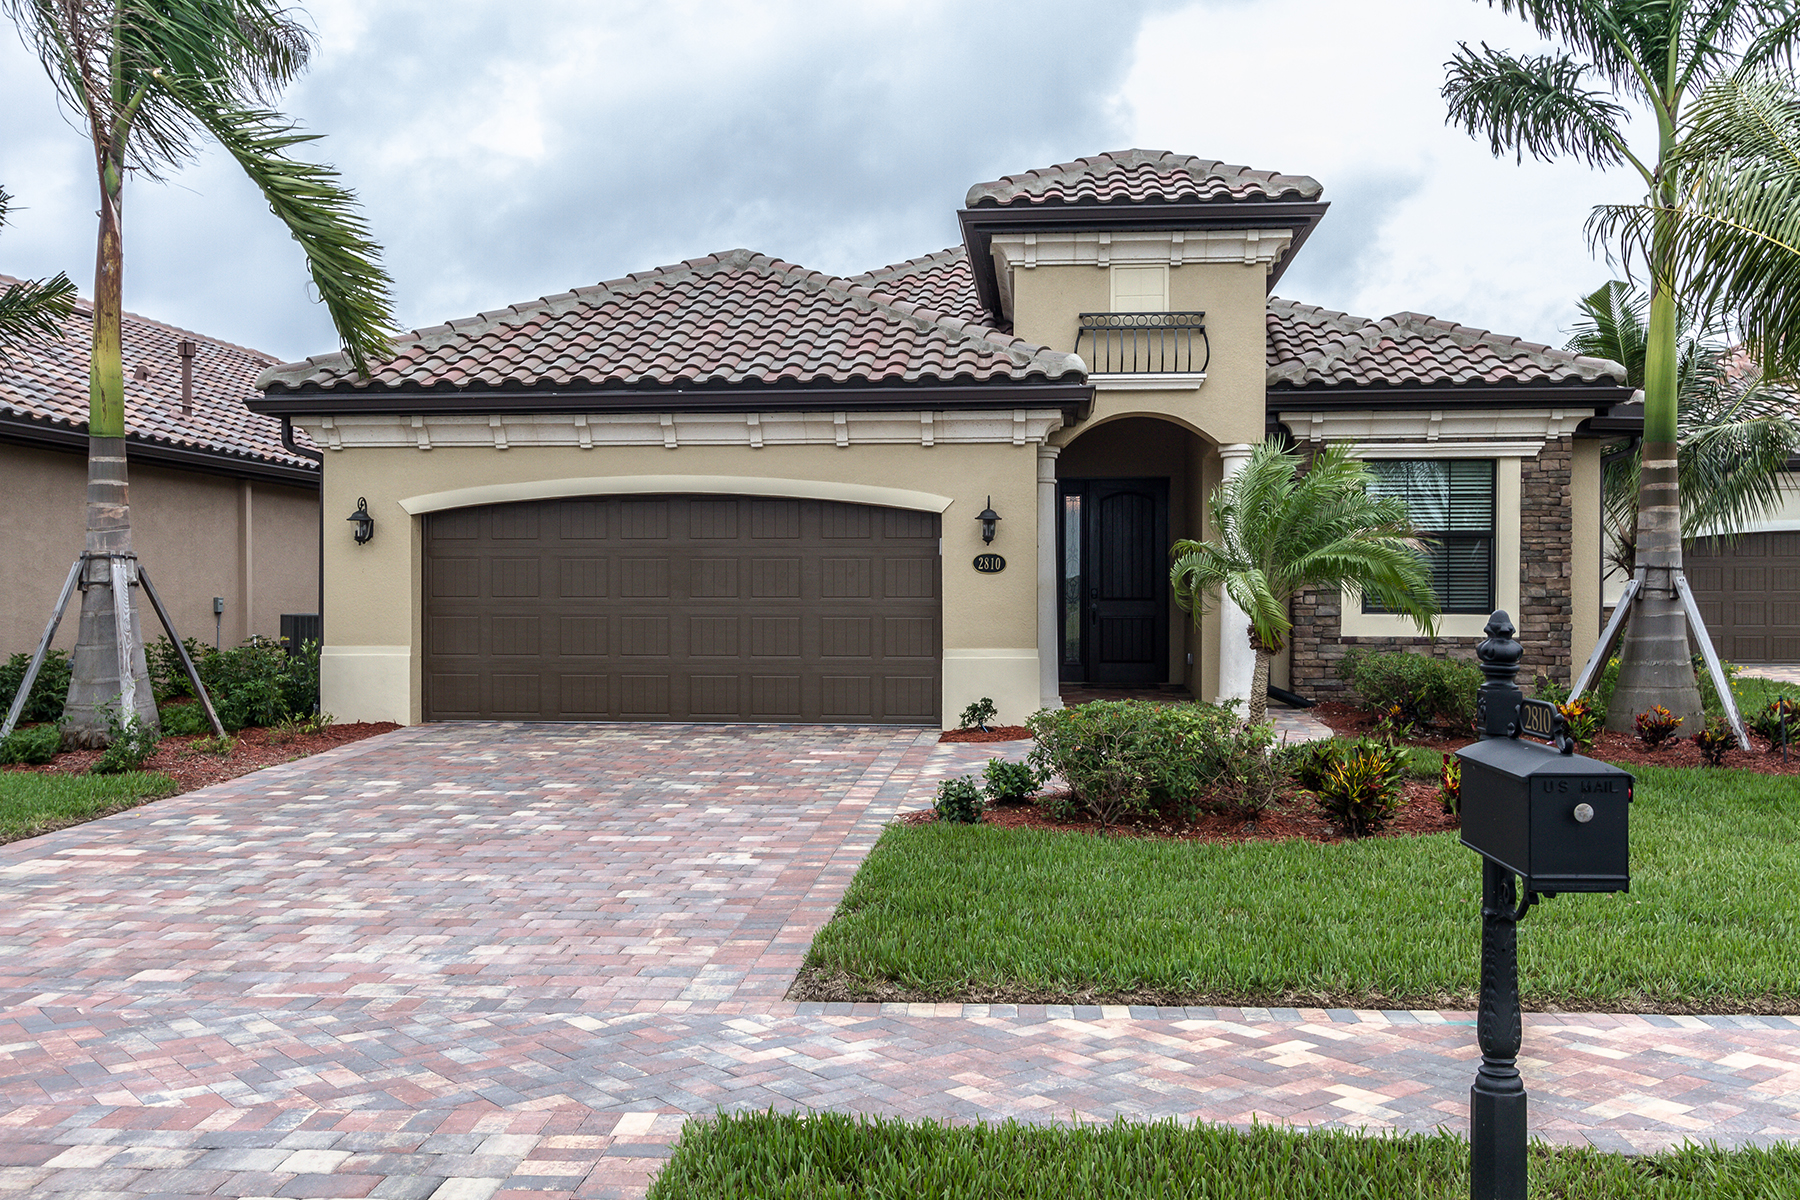 Single Family Home for Rent at FIDDLERS CREEK - MILLBROOK 2810 Aviamar Cir, Naples, Florida 34114 United States